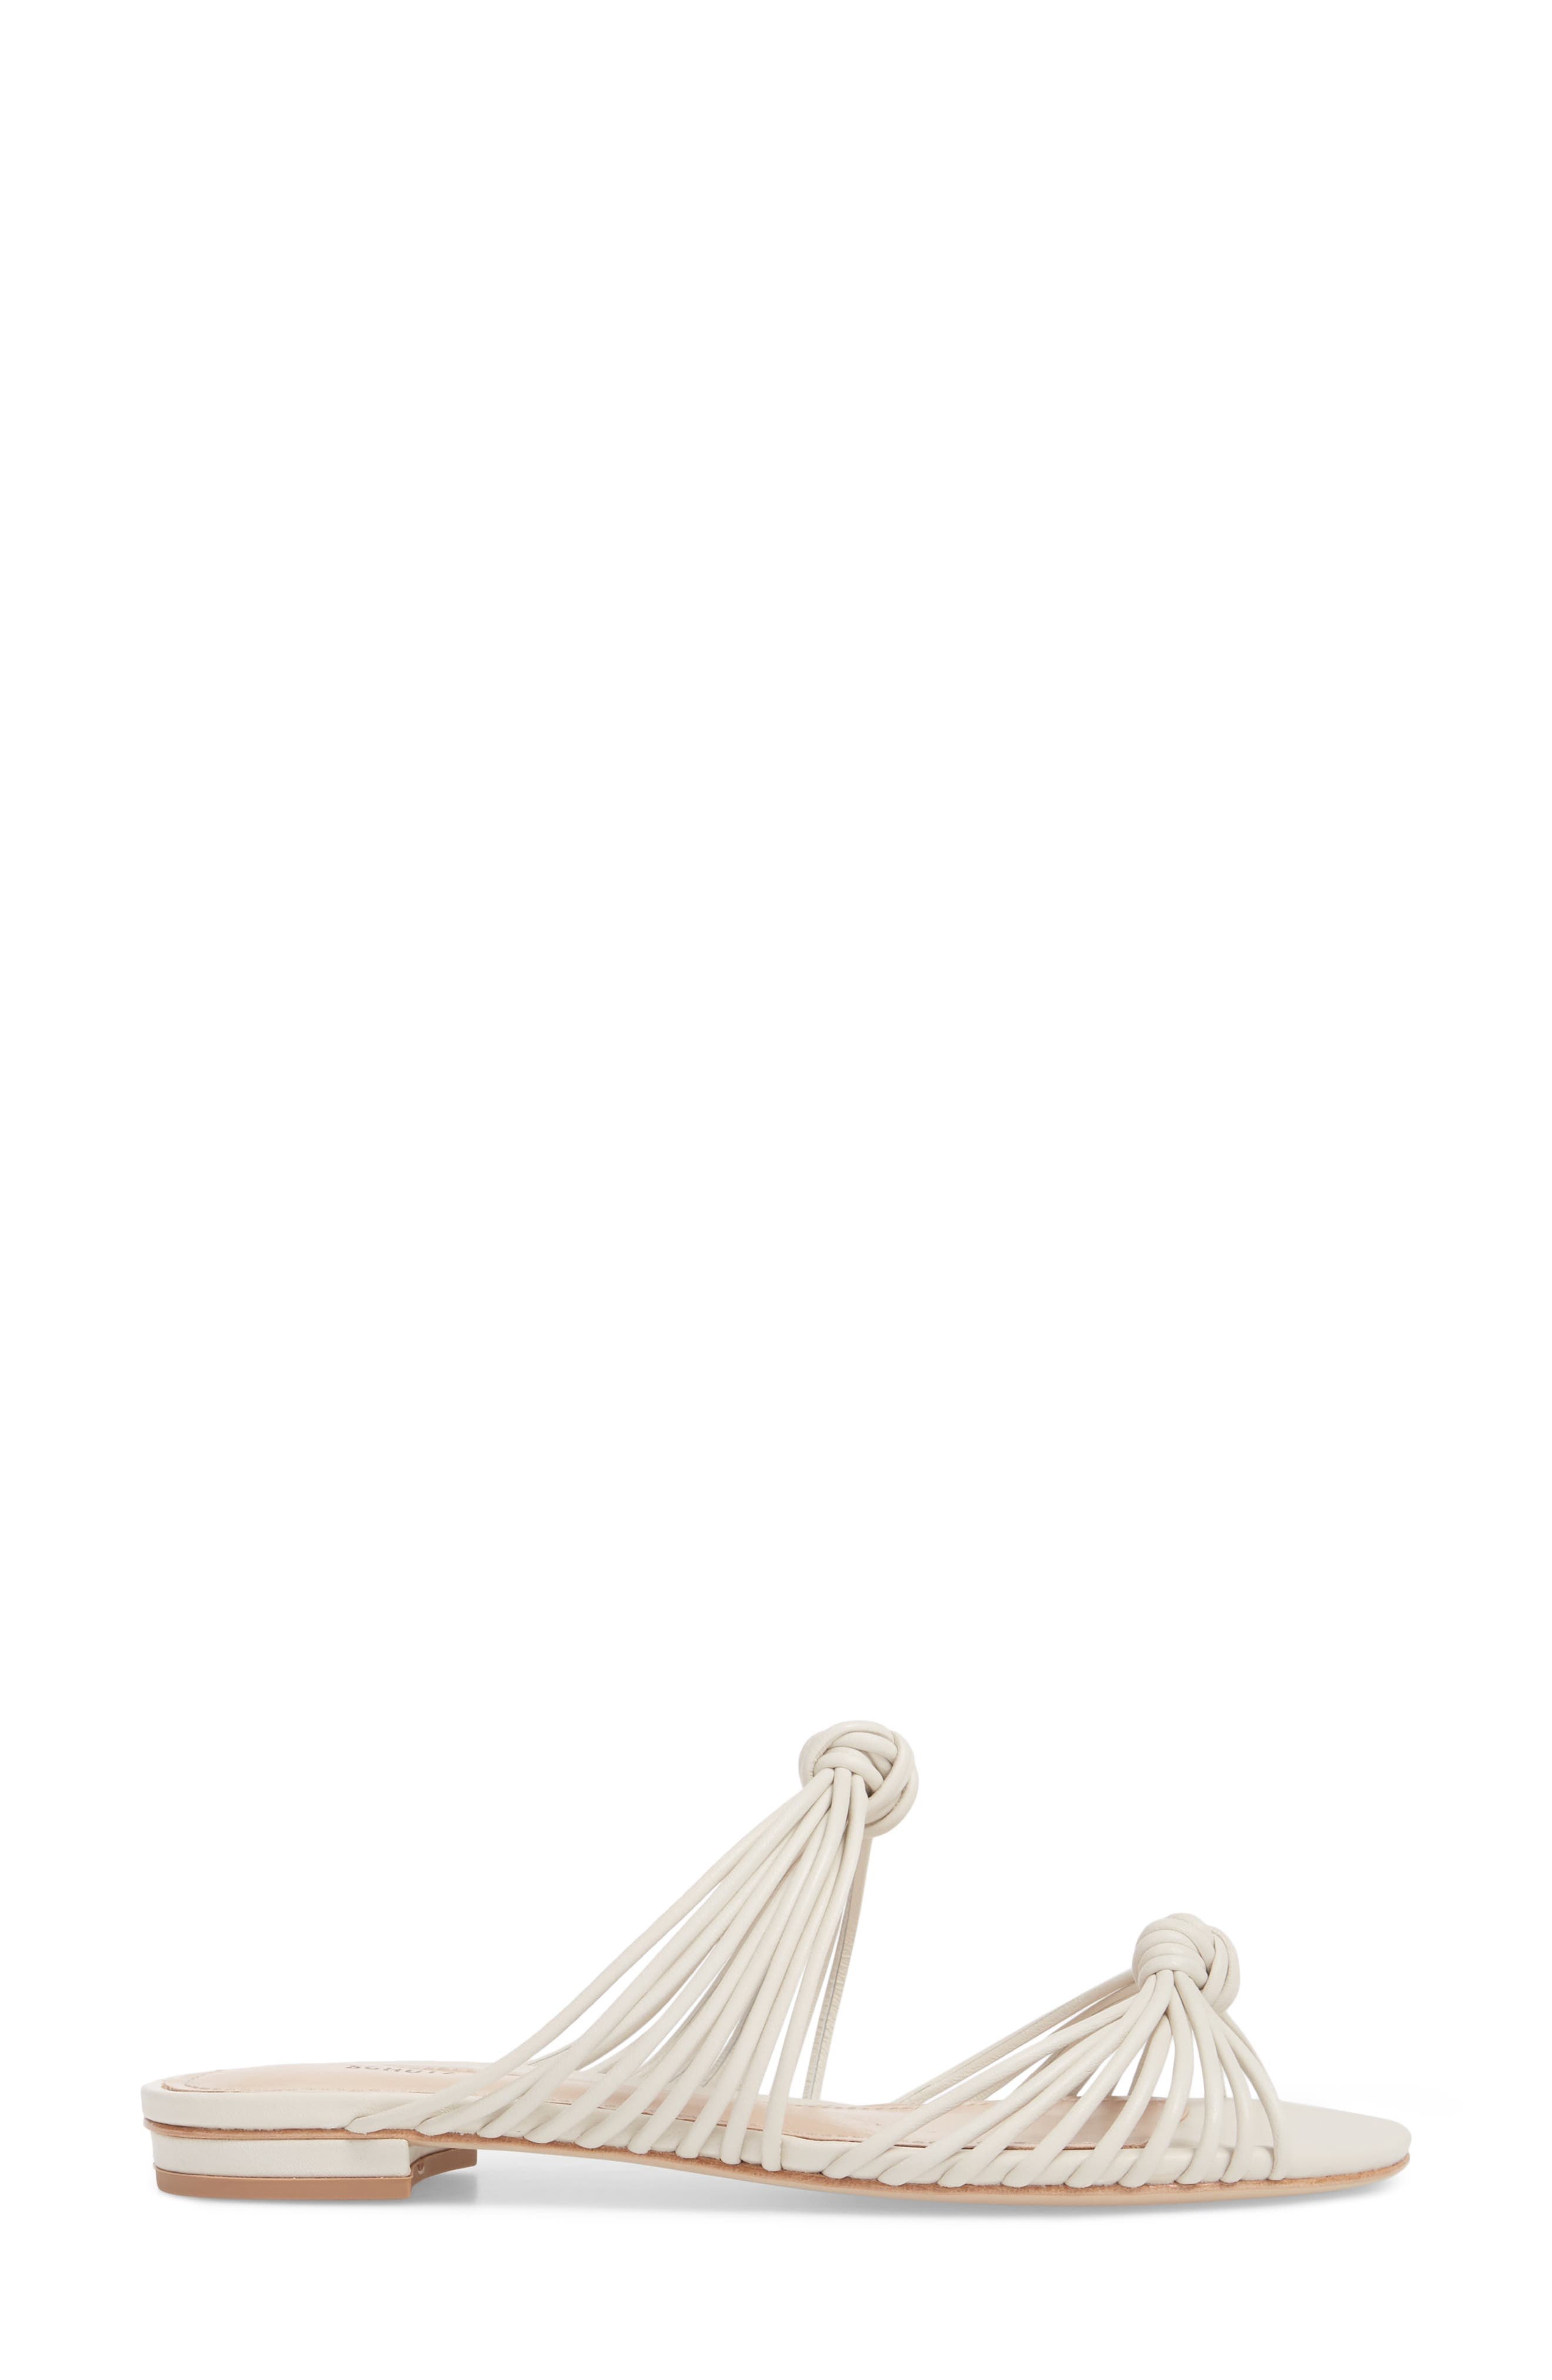 Nitiely Slide Sandal,                             Alternate thumbnail 3, color,                             Pearl Fabric